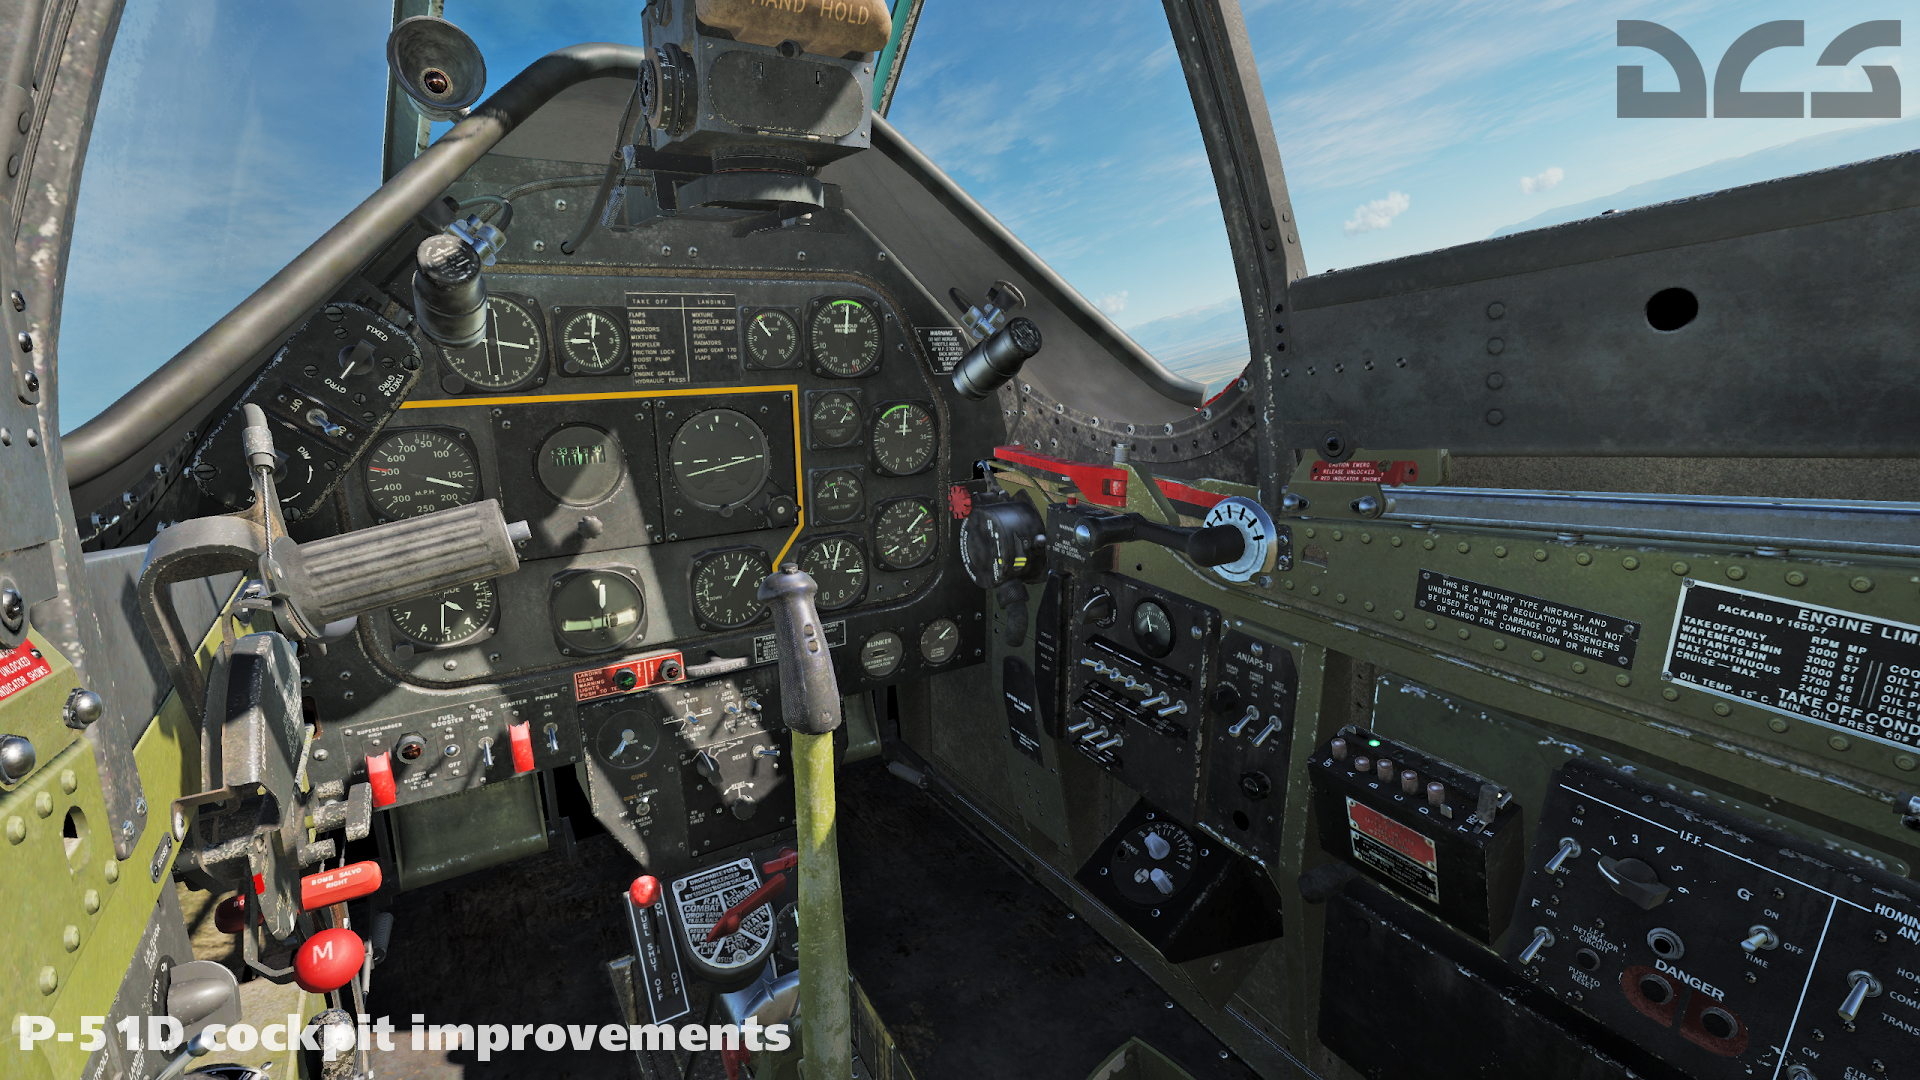 www.digitalcombatsimulator.com/upload/iblock/129/P-51D-cockpit-improvements-2.jpg